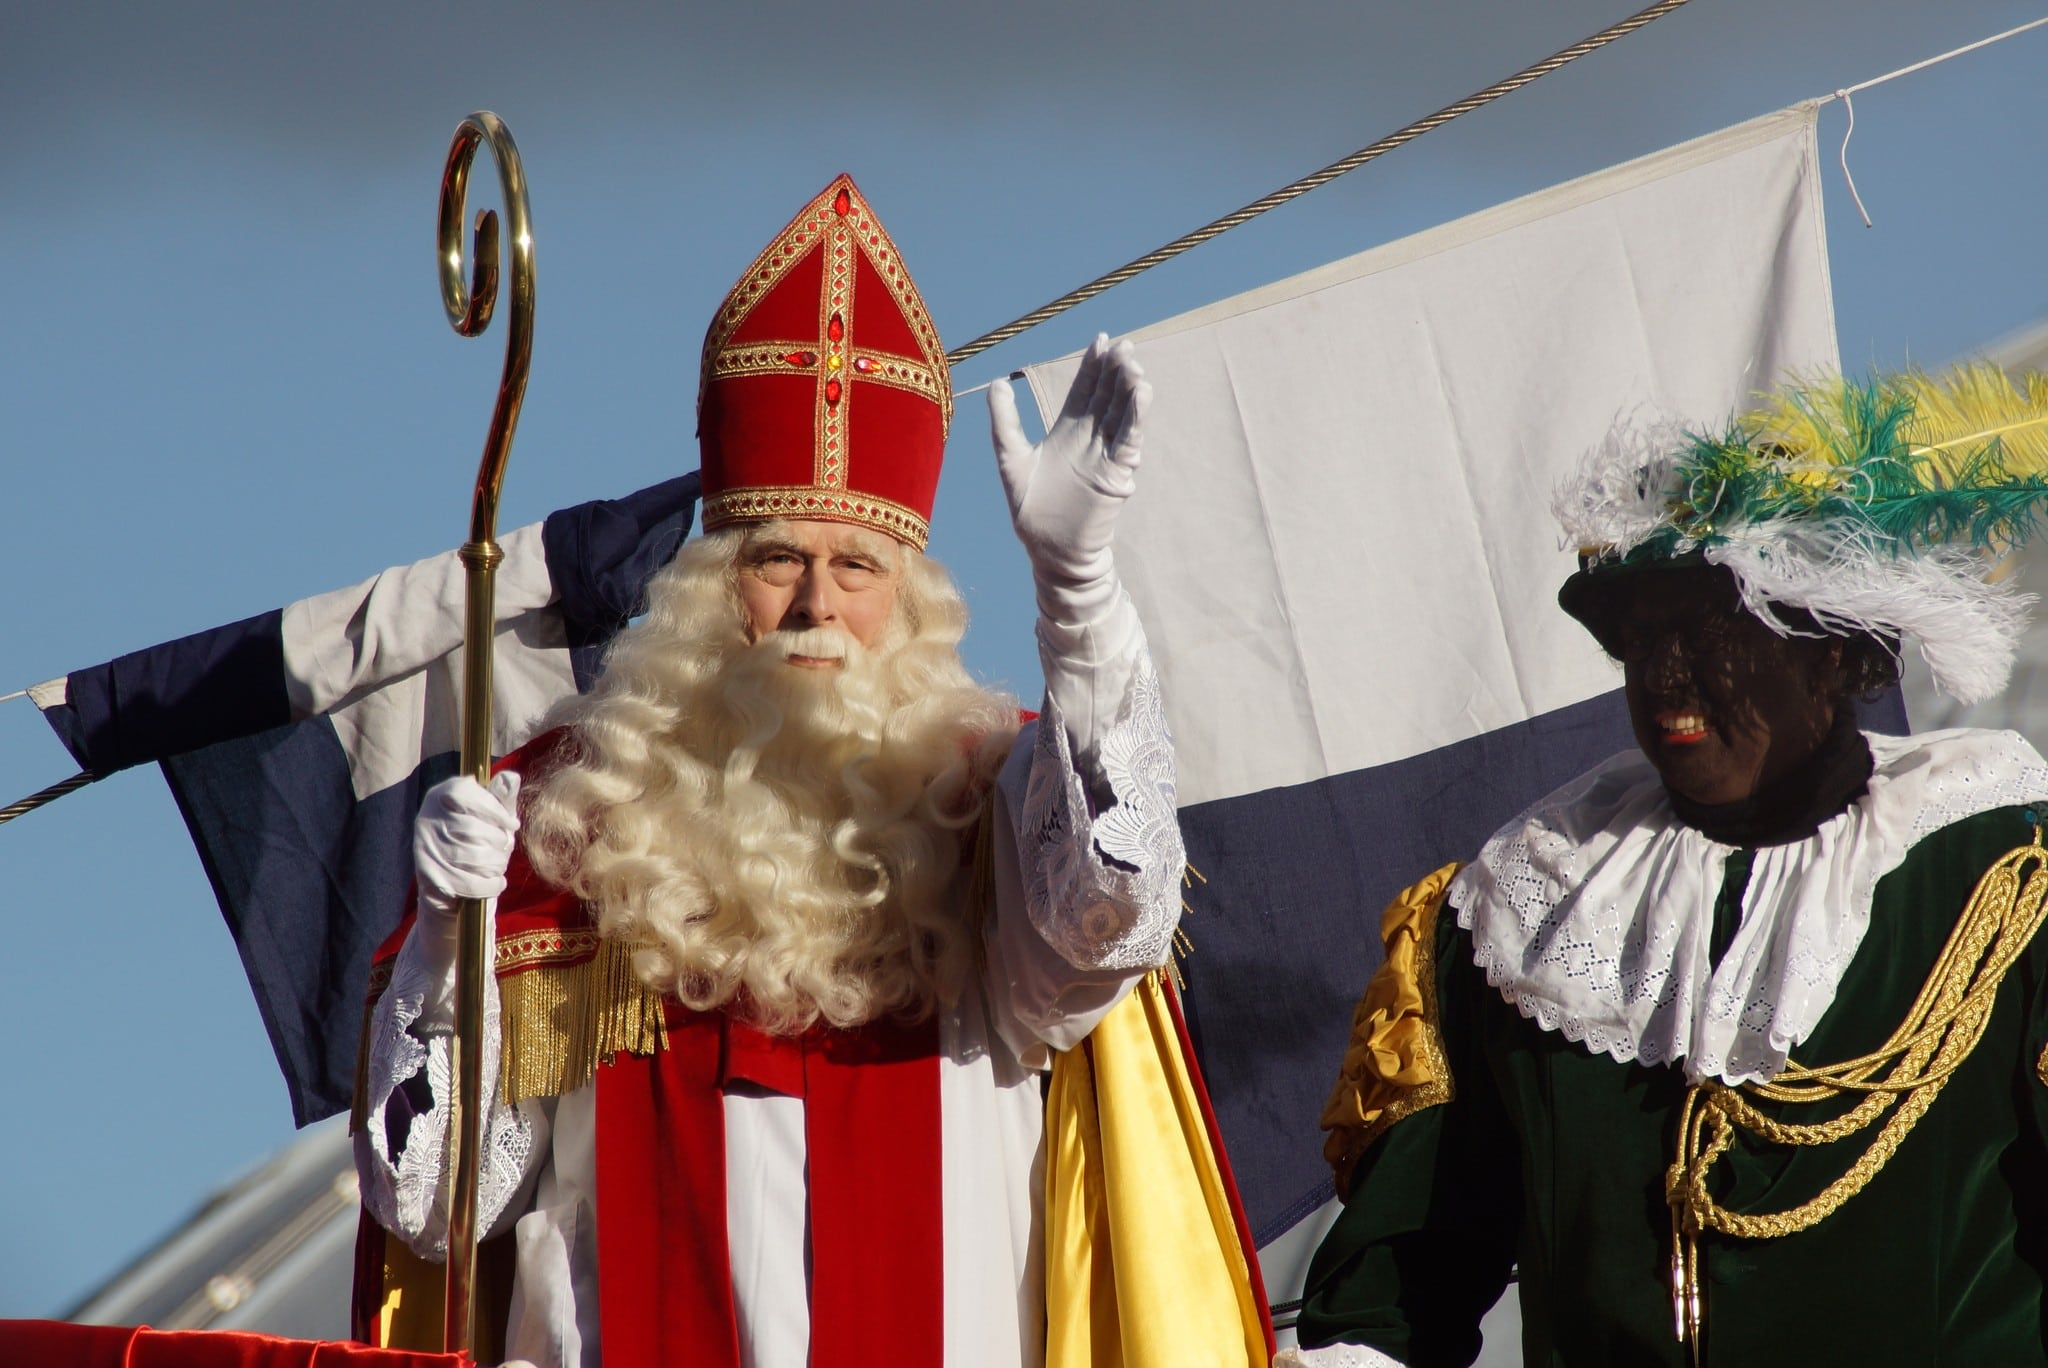 Sinterklaas and his assistant in the Netherlands